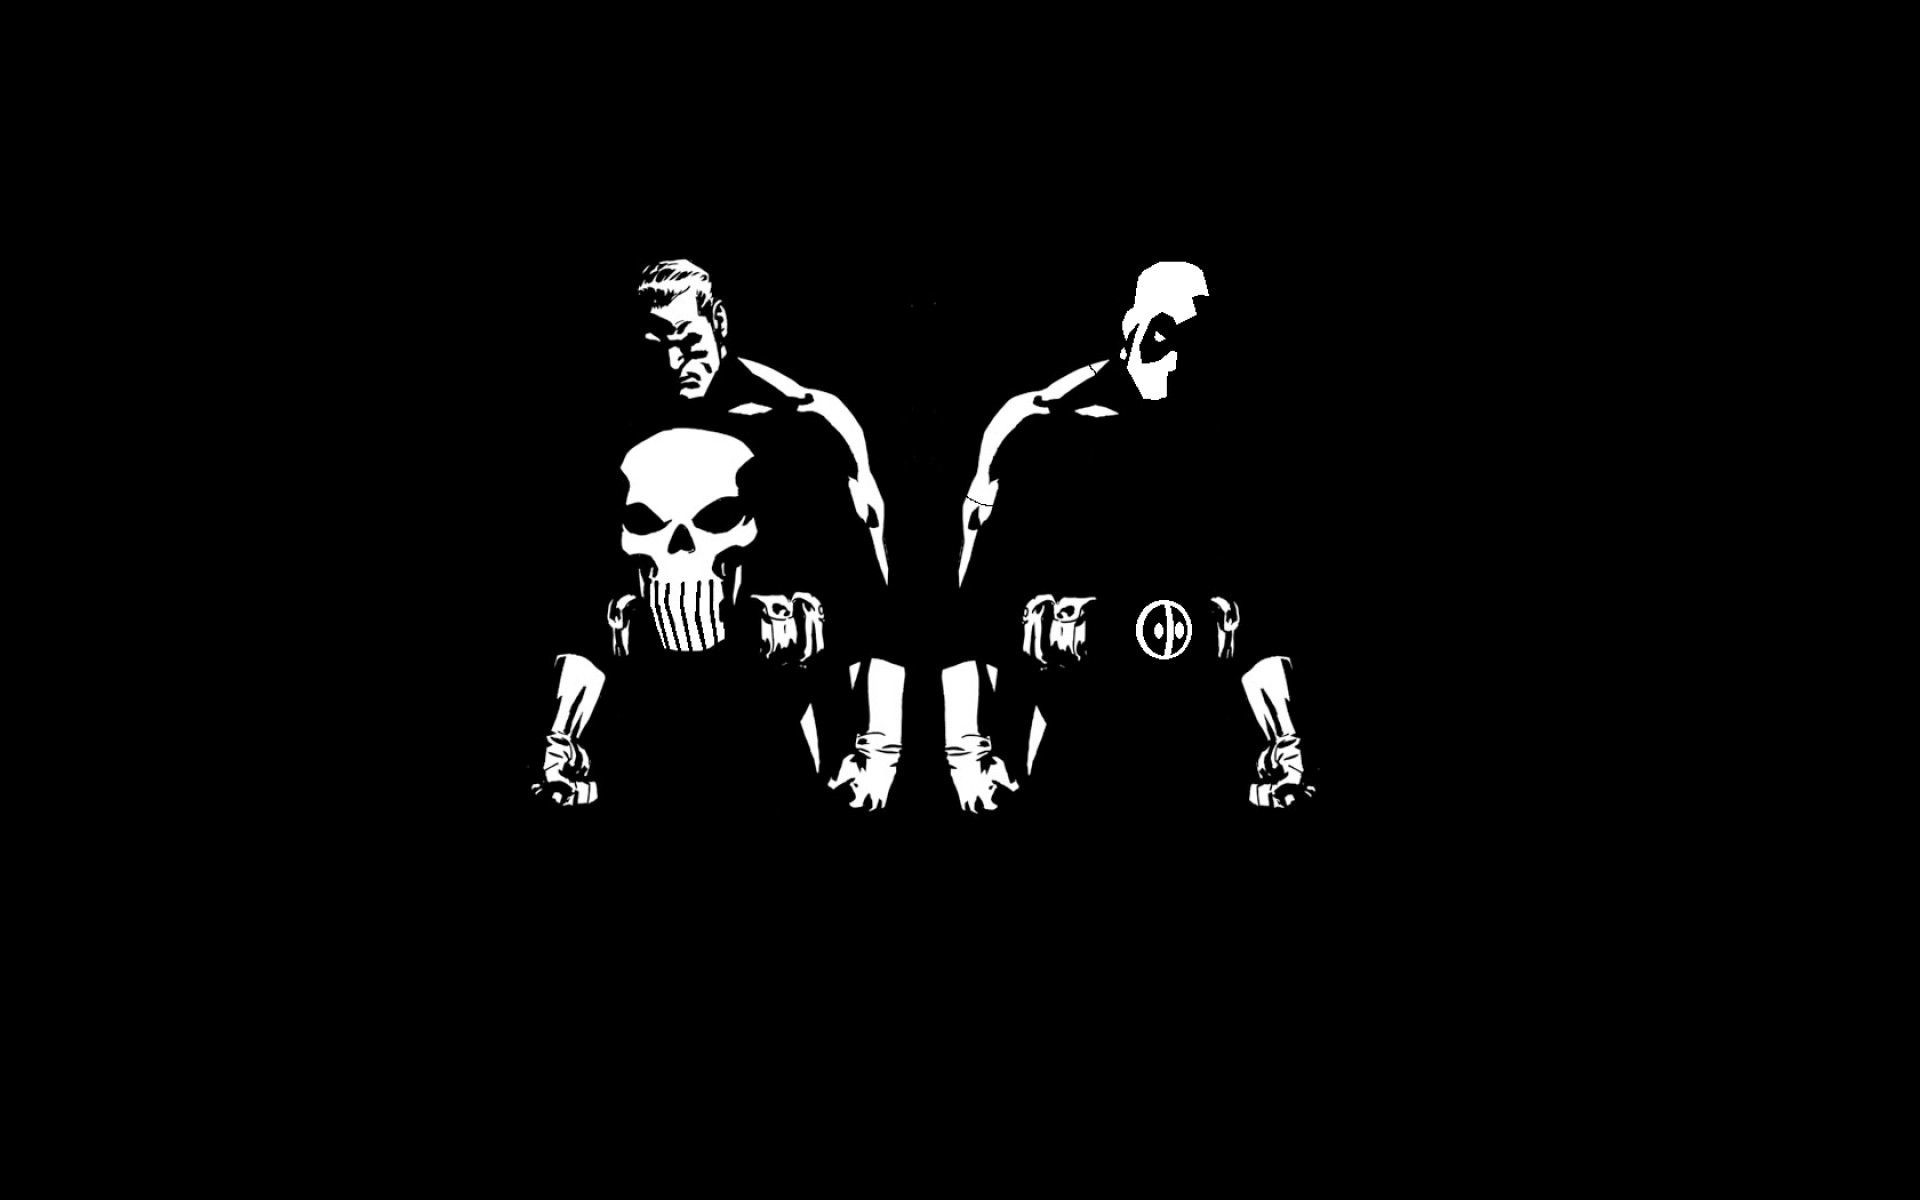 The Punisher Wallpapers Desktop K HD Backgrounds Fungyung